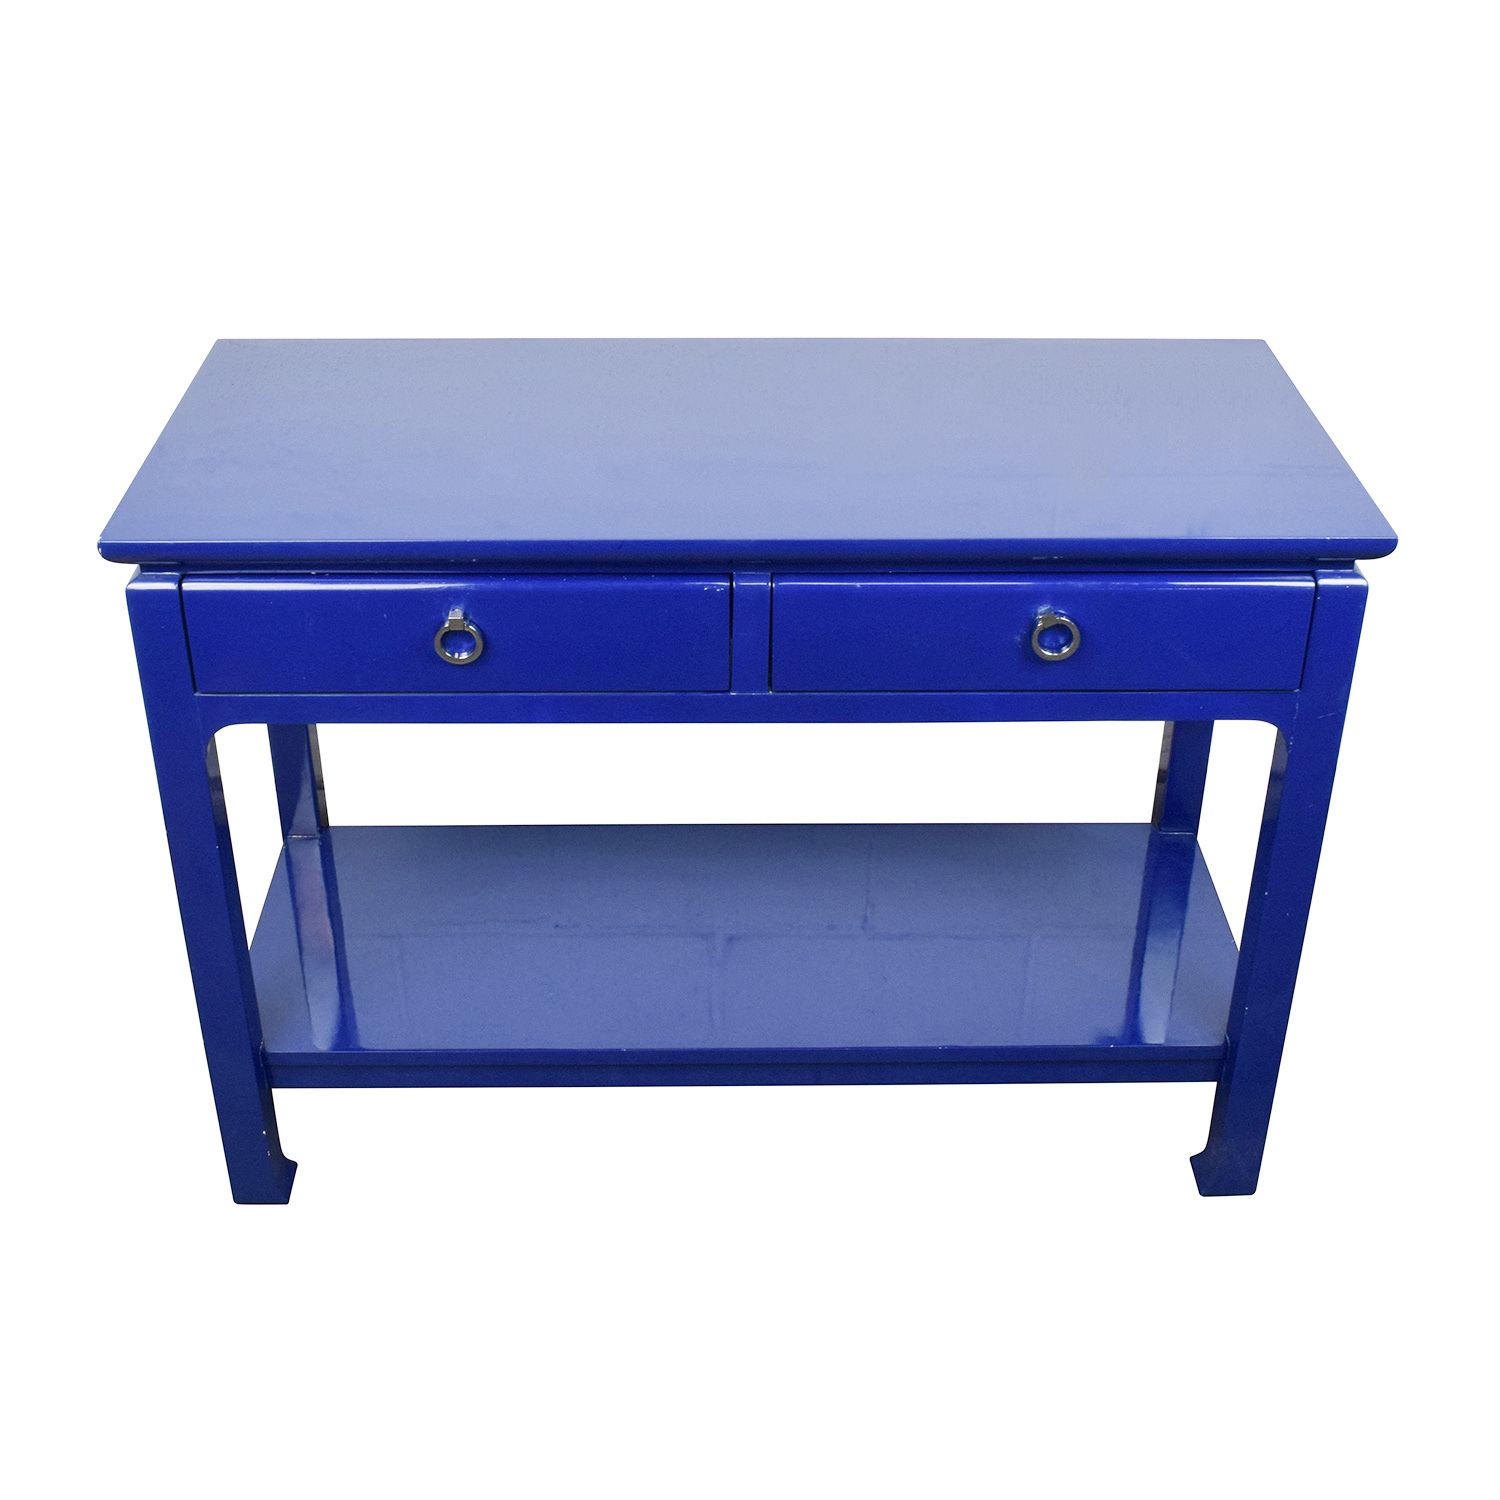 Bruna Bruna Modern Classic Blue Lacquer Chinoiserie Console Table second hand